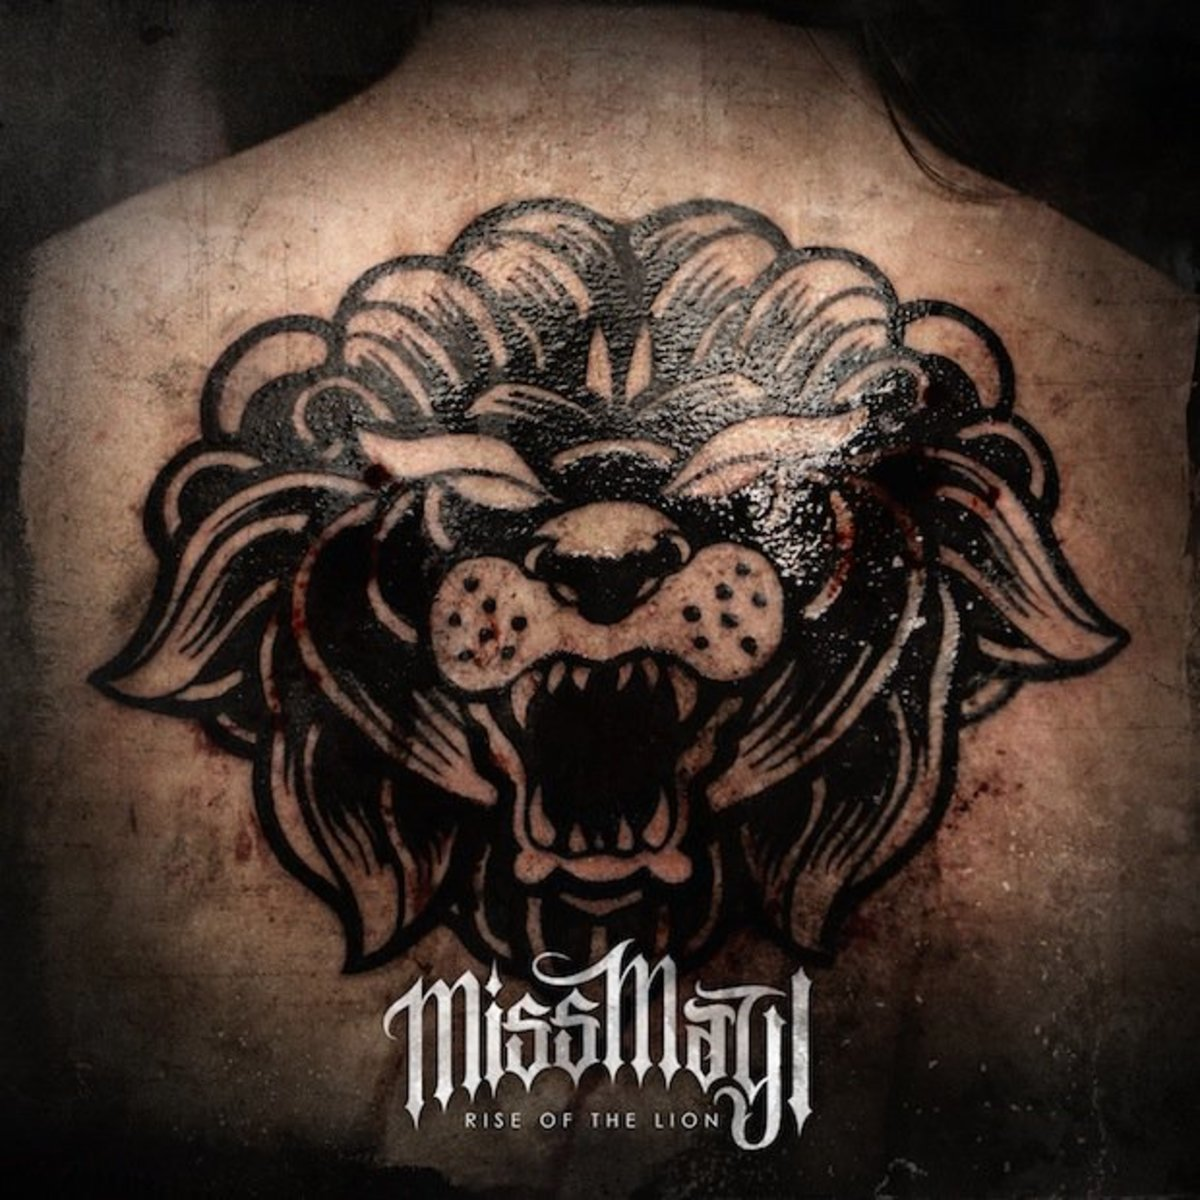 Rise of the Lion Cover Art. Tattoo by London Reese